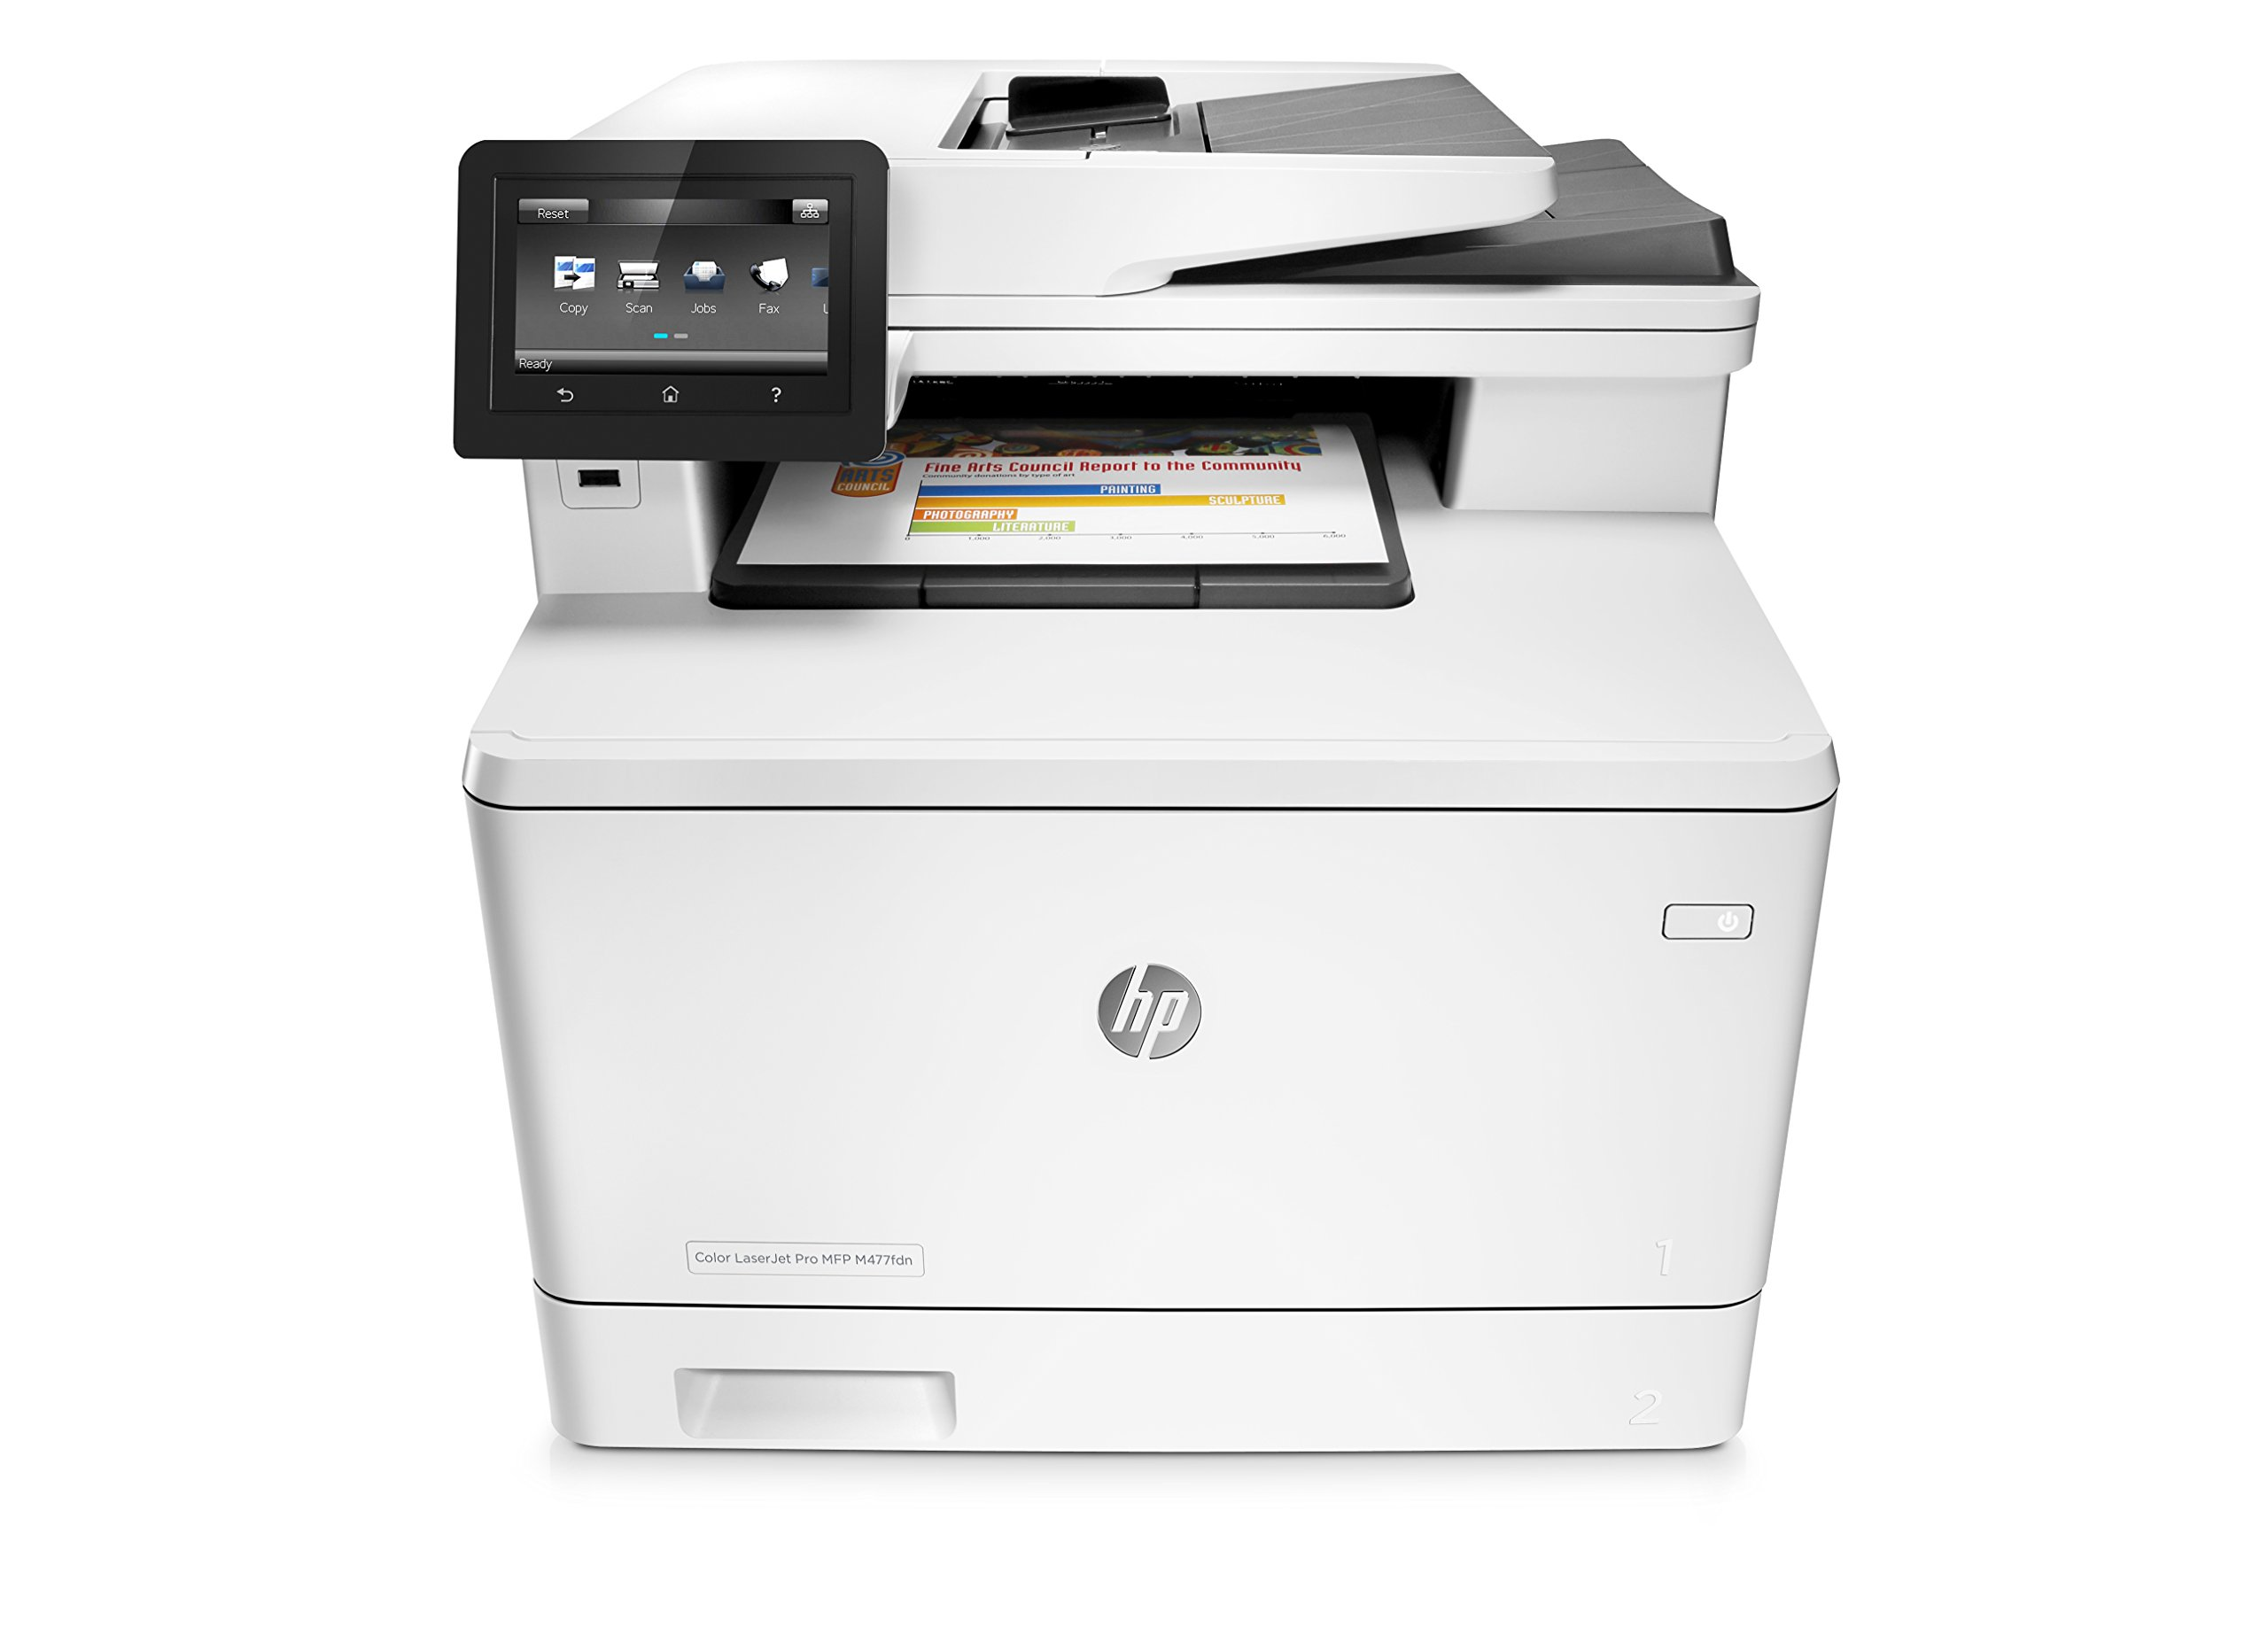 HP LaserJet Pro M477fdn Multifunction Color Laser Printer with Built-in Ethernet & Duplex Printing (CF378A) by HP